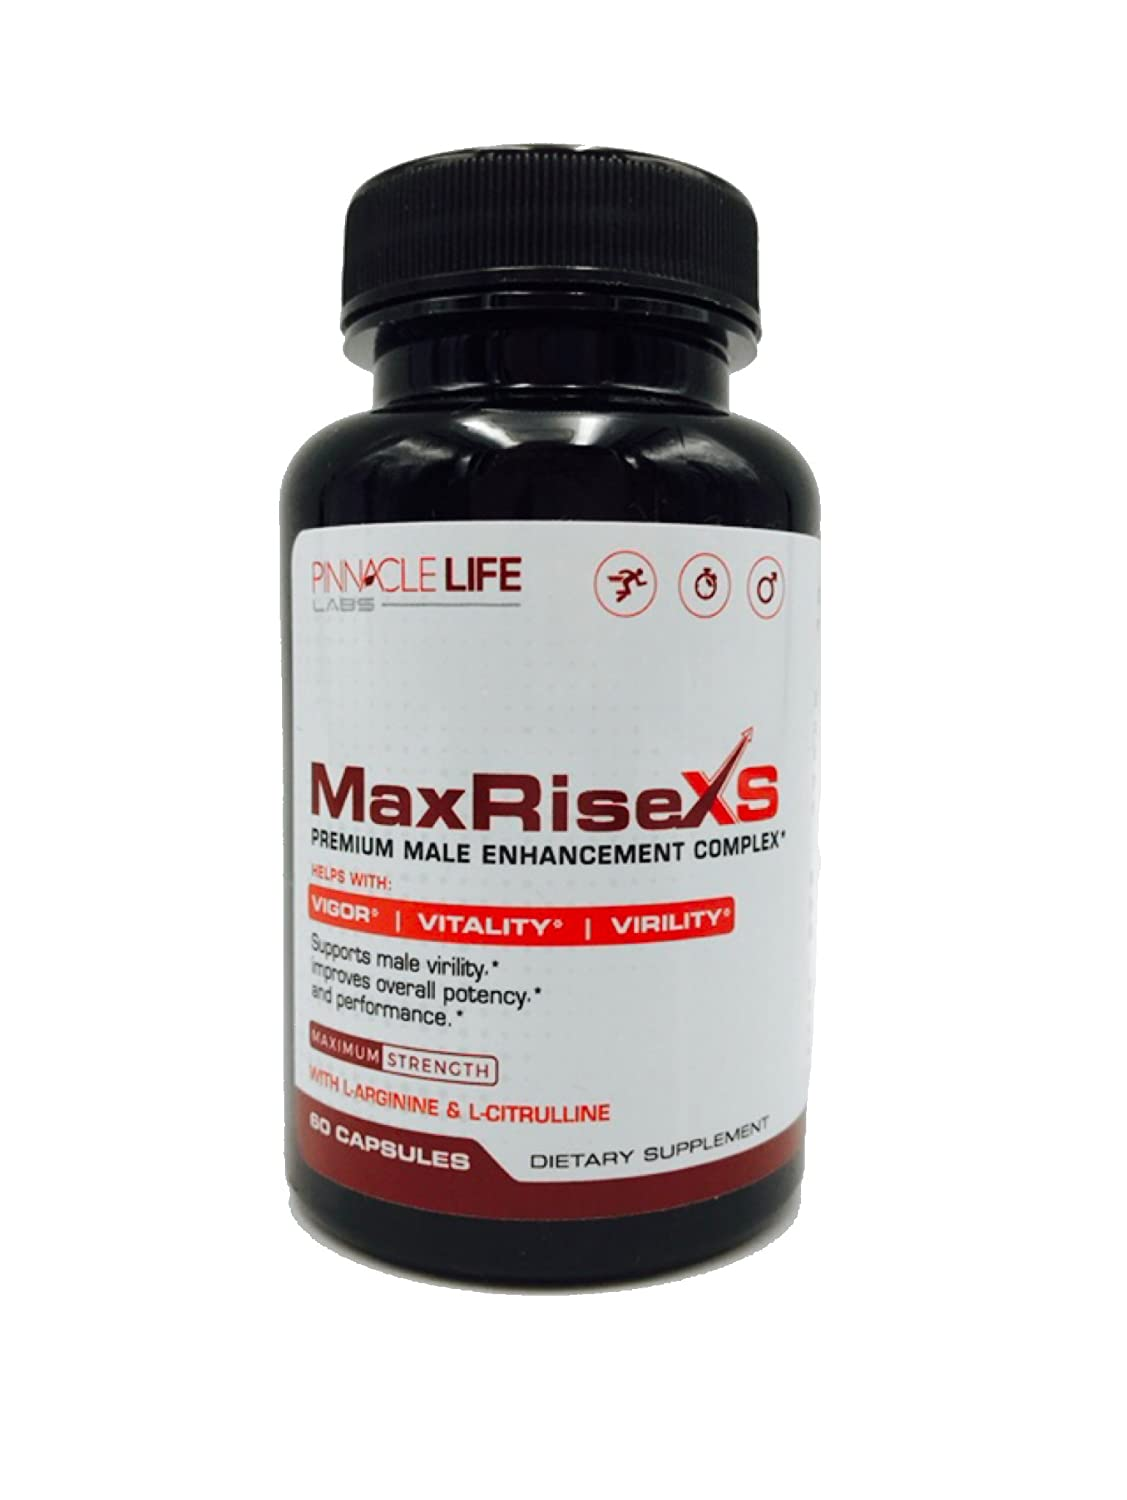 Amazon.com: Max Rise XS- Premium Enhancement Complex- Helps With Vigor Vitality Virality- Supports Male Vitality: Health & Personal Care